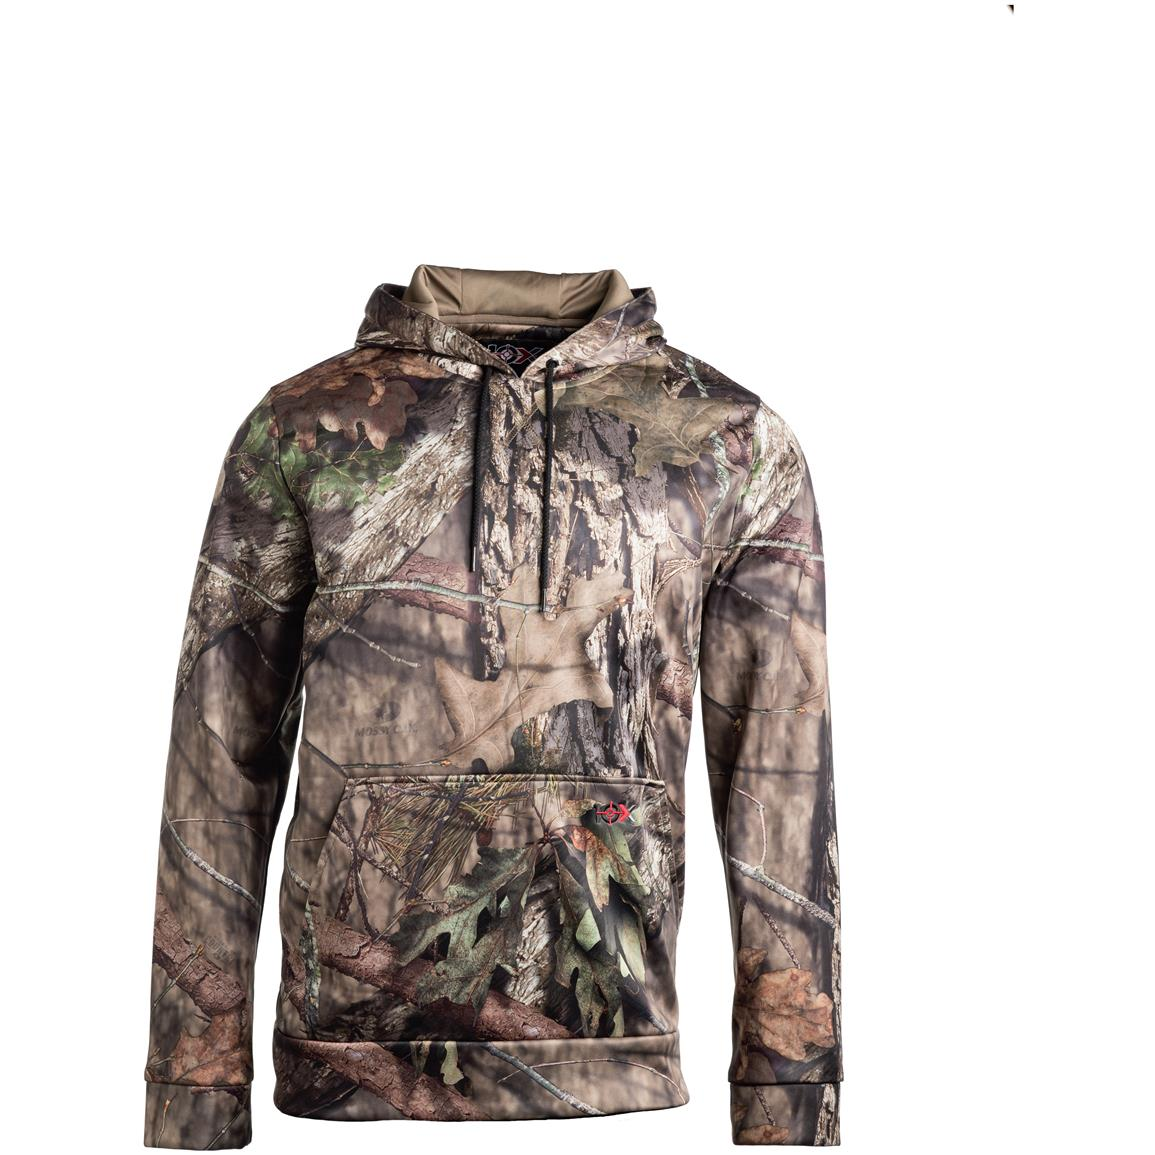 10X Men's Scentrex Hoodie, Mossy Oak Break-Up Country